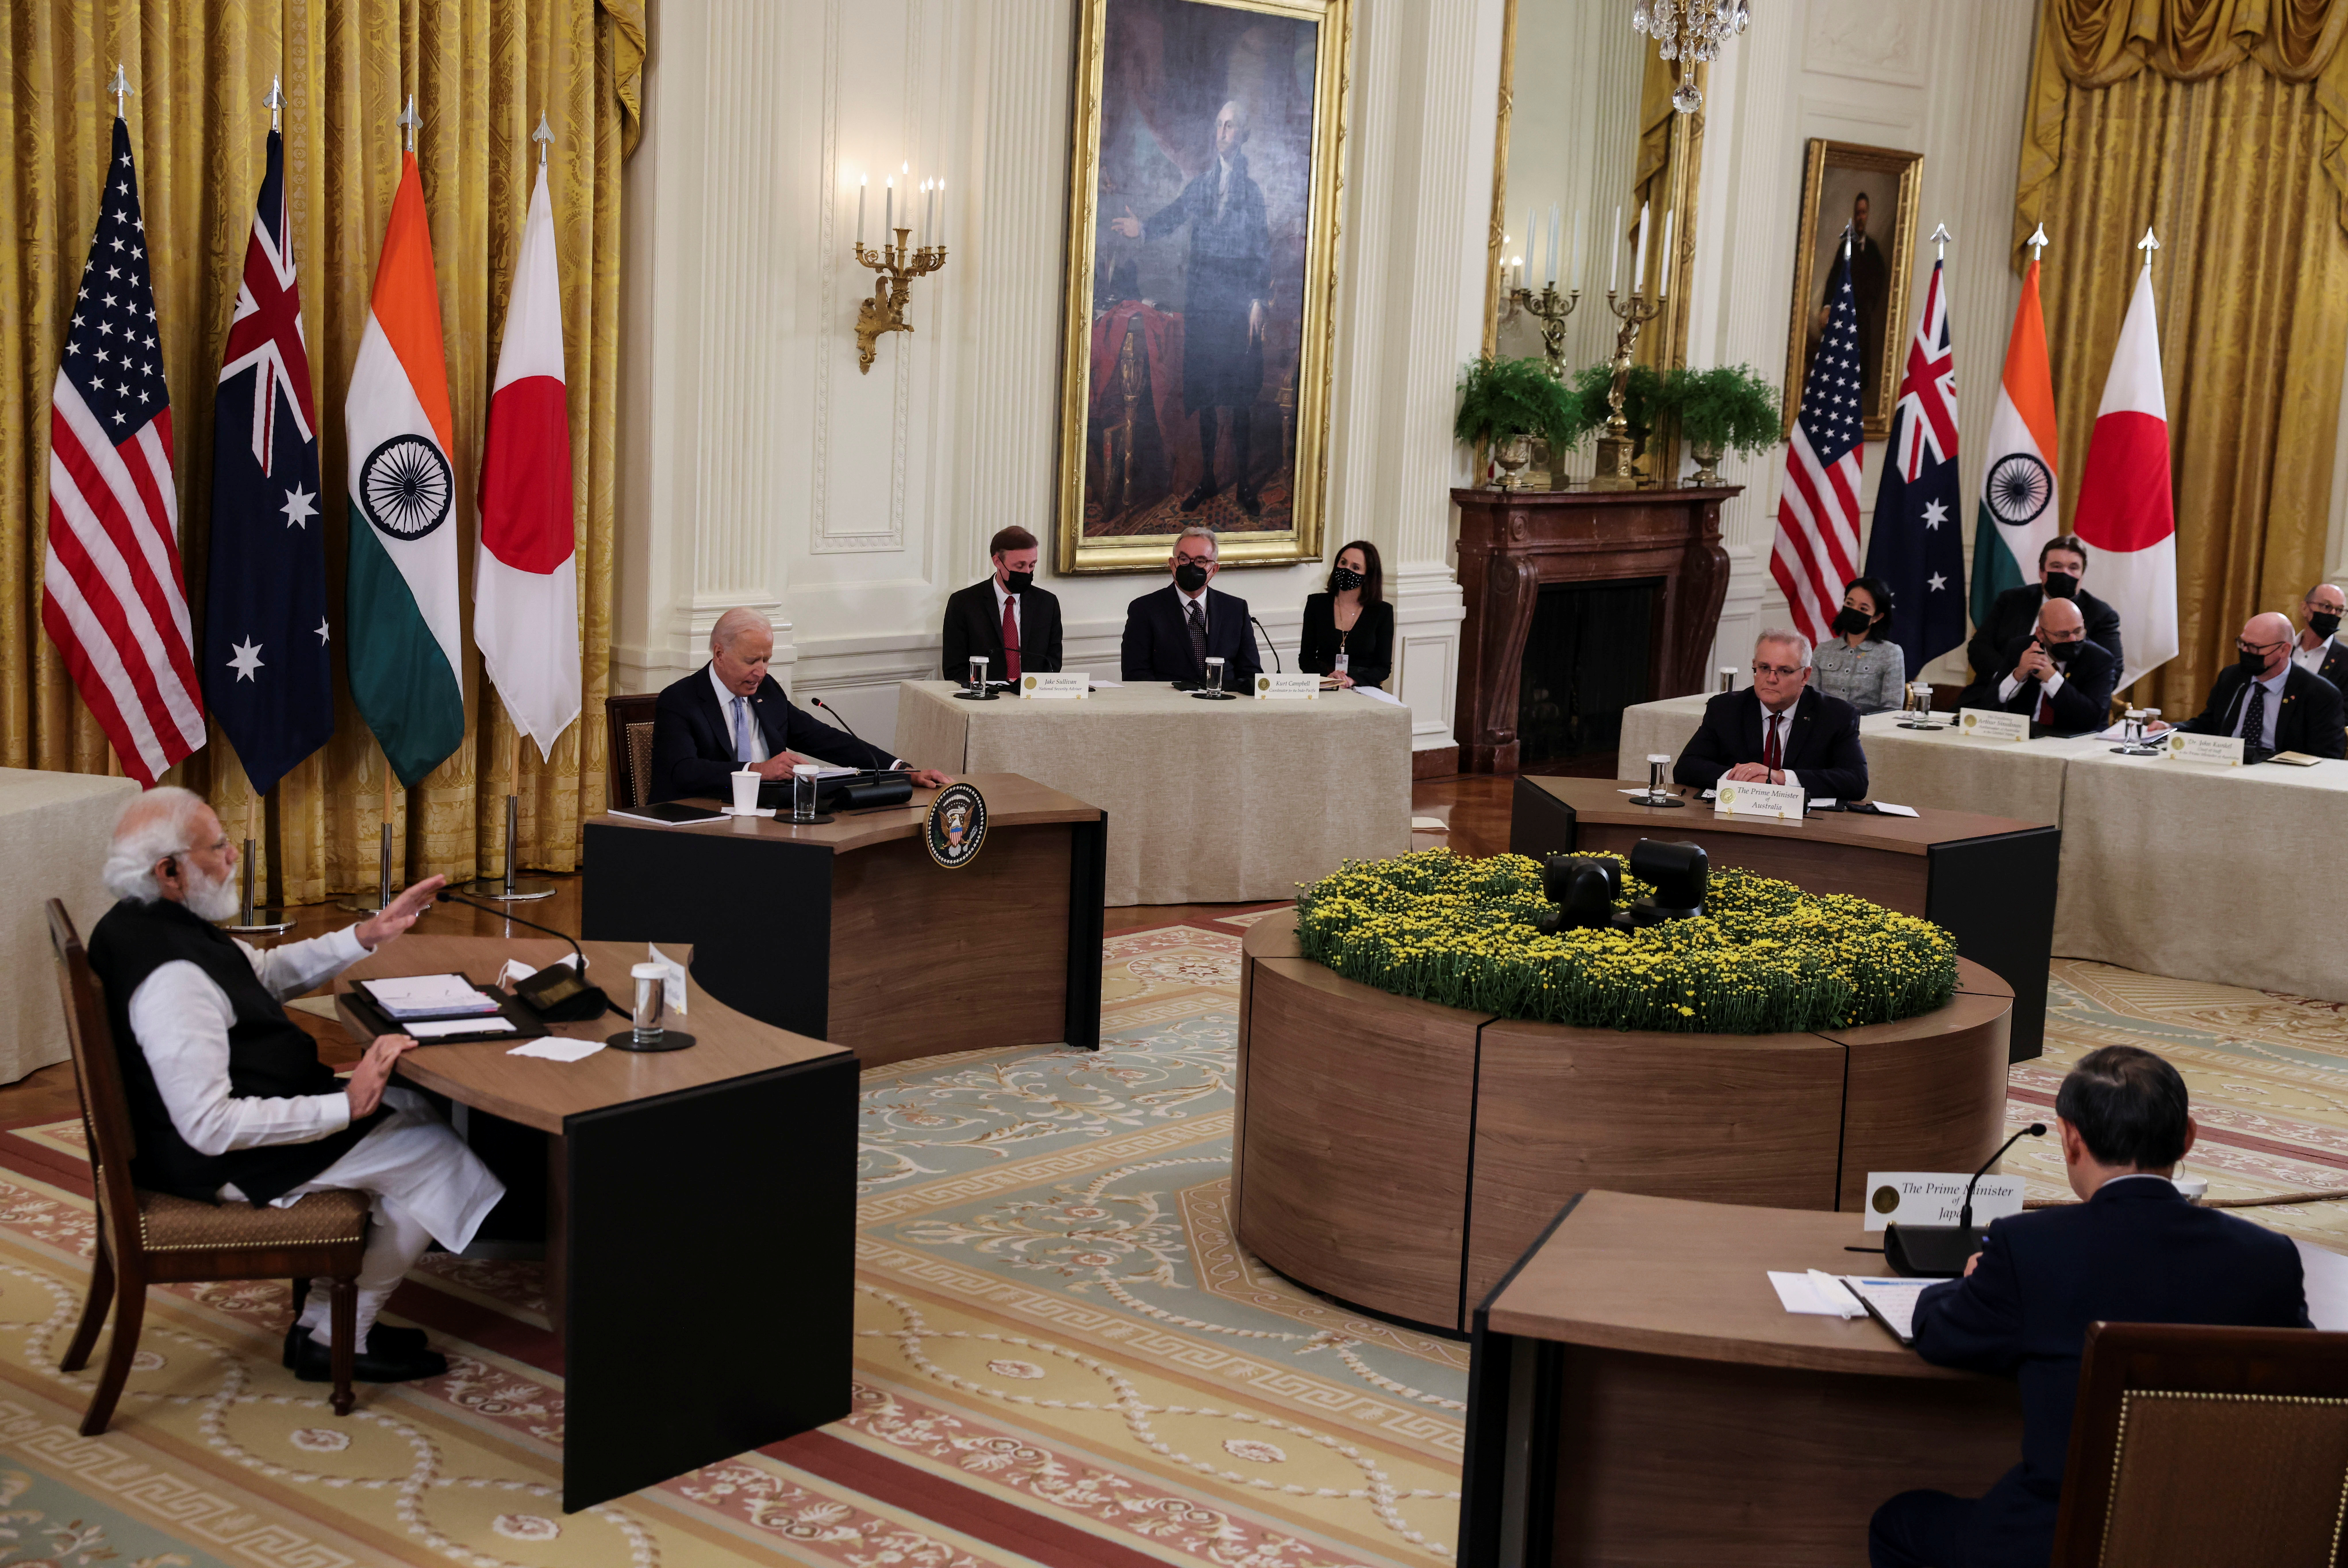 India's Prime Minister Narendra Modi speaks during a 'Quad nations' meeting at the Leaders' Summit of the Quadrilateral Framework hosted by U.S. President Joe Biden with Australia's Prime Minister Scott Morrison and Japan's Prime Minister Yoshihide Suga in the East Room at the White House in Washington, U.S., September 24, 2021. REUTERS/Evelyn Hockstein